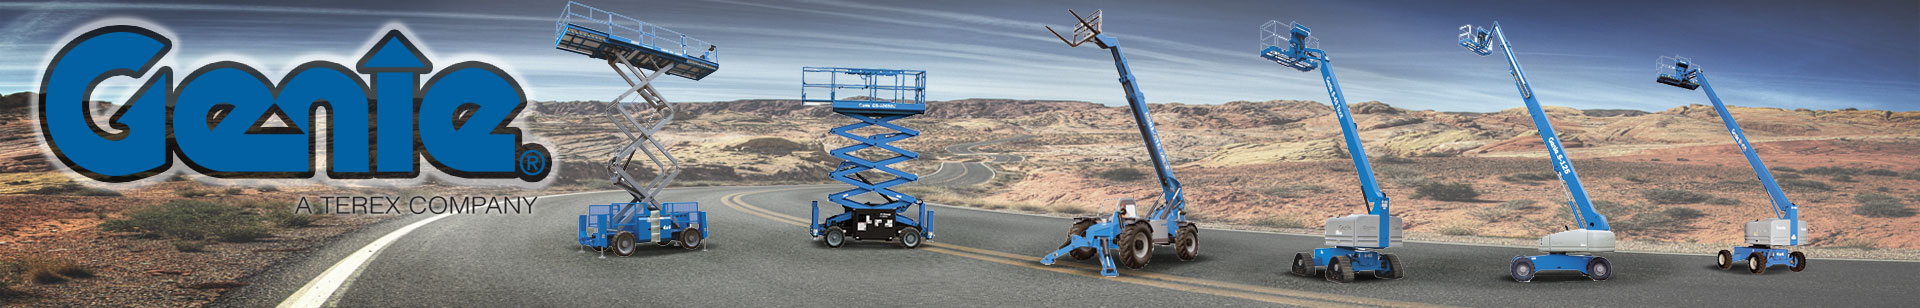 Genie Manlifts, Aerial Lifts, Scissor Lifts, Boom Lifts and AWP's for sale